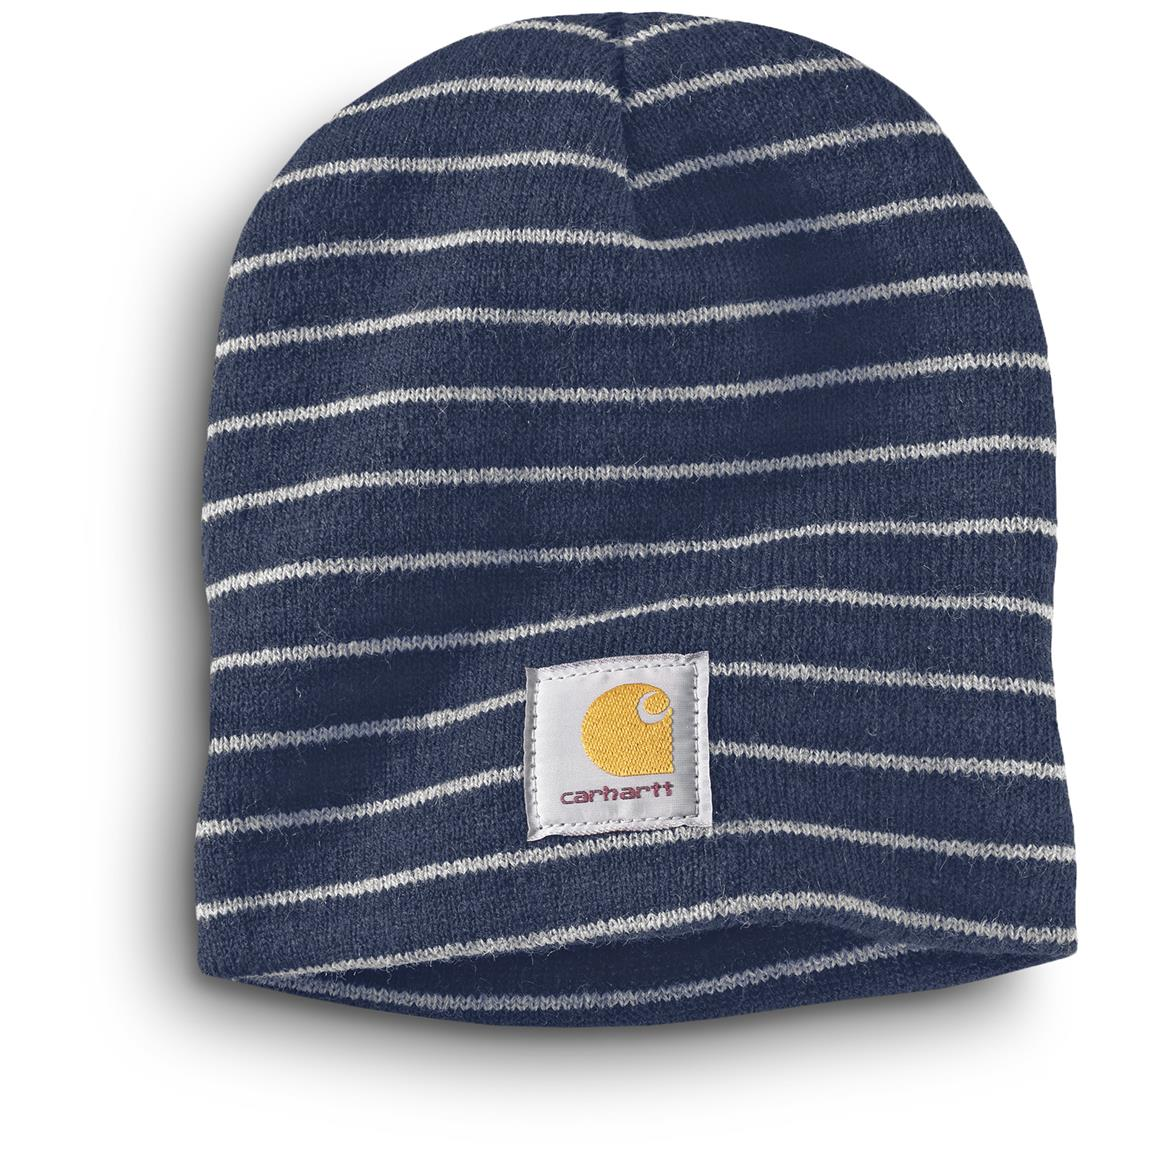 Carhartt Men's Prescott Knit Beanie Caps, 3 Pack, Navy